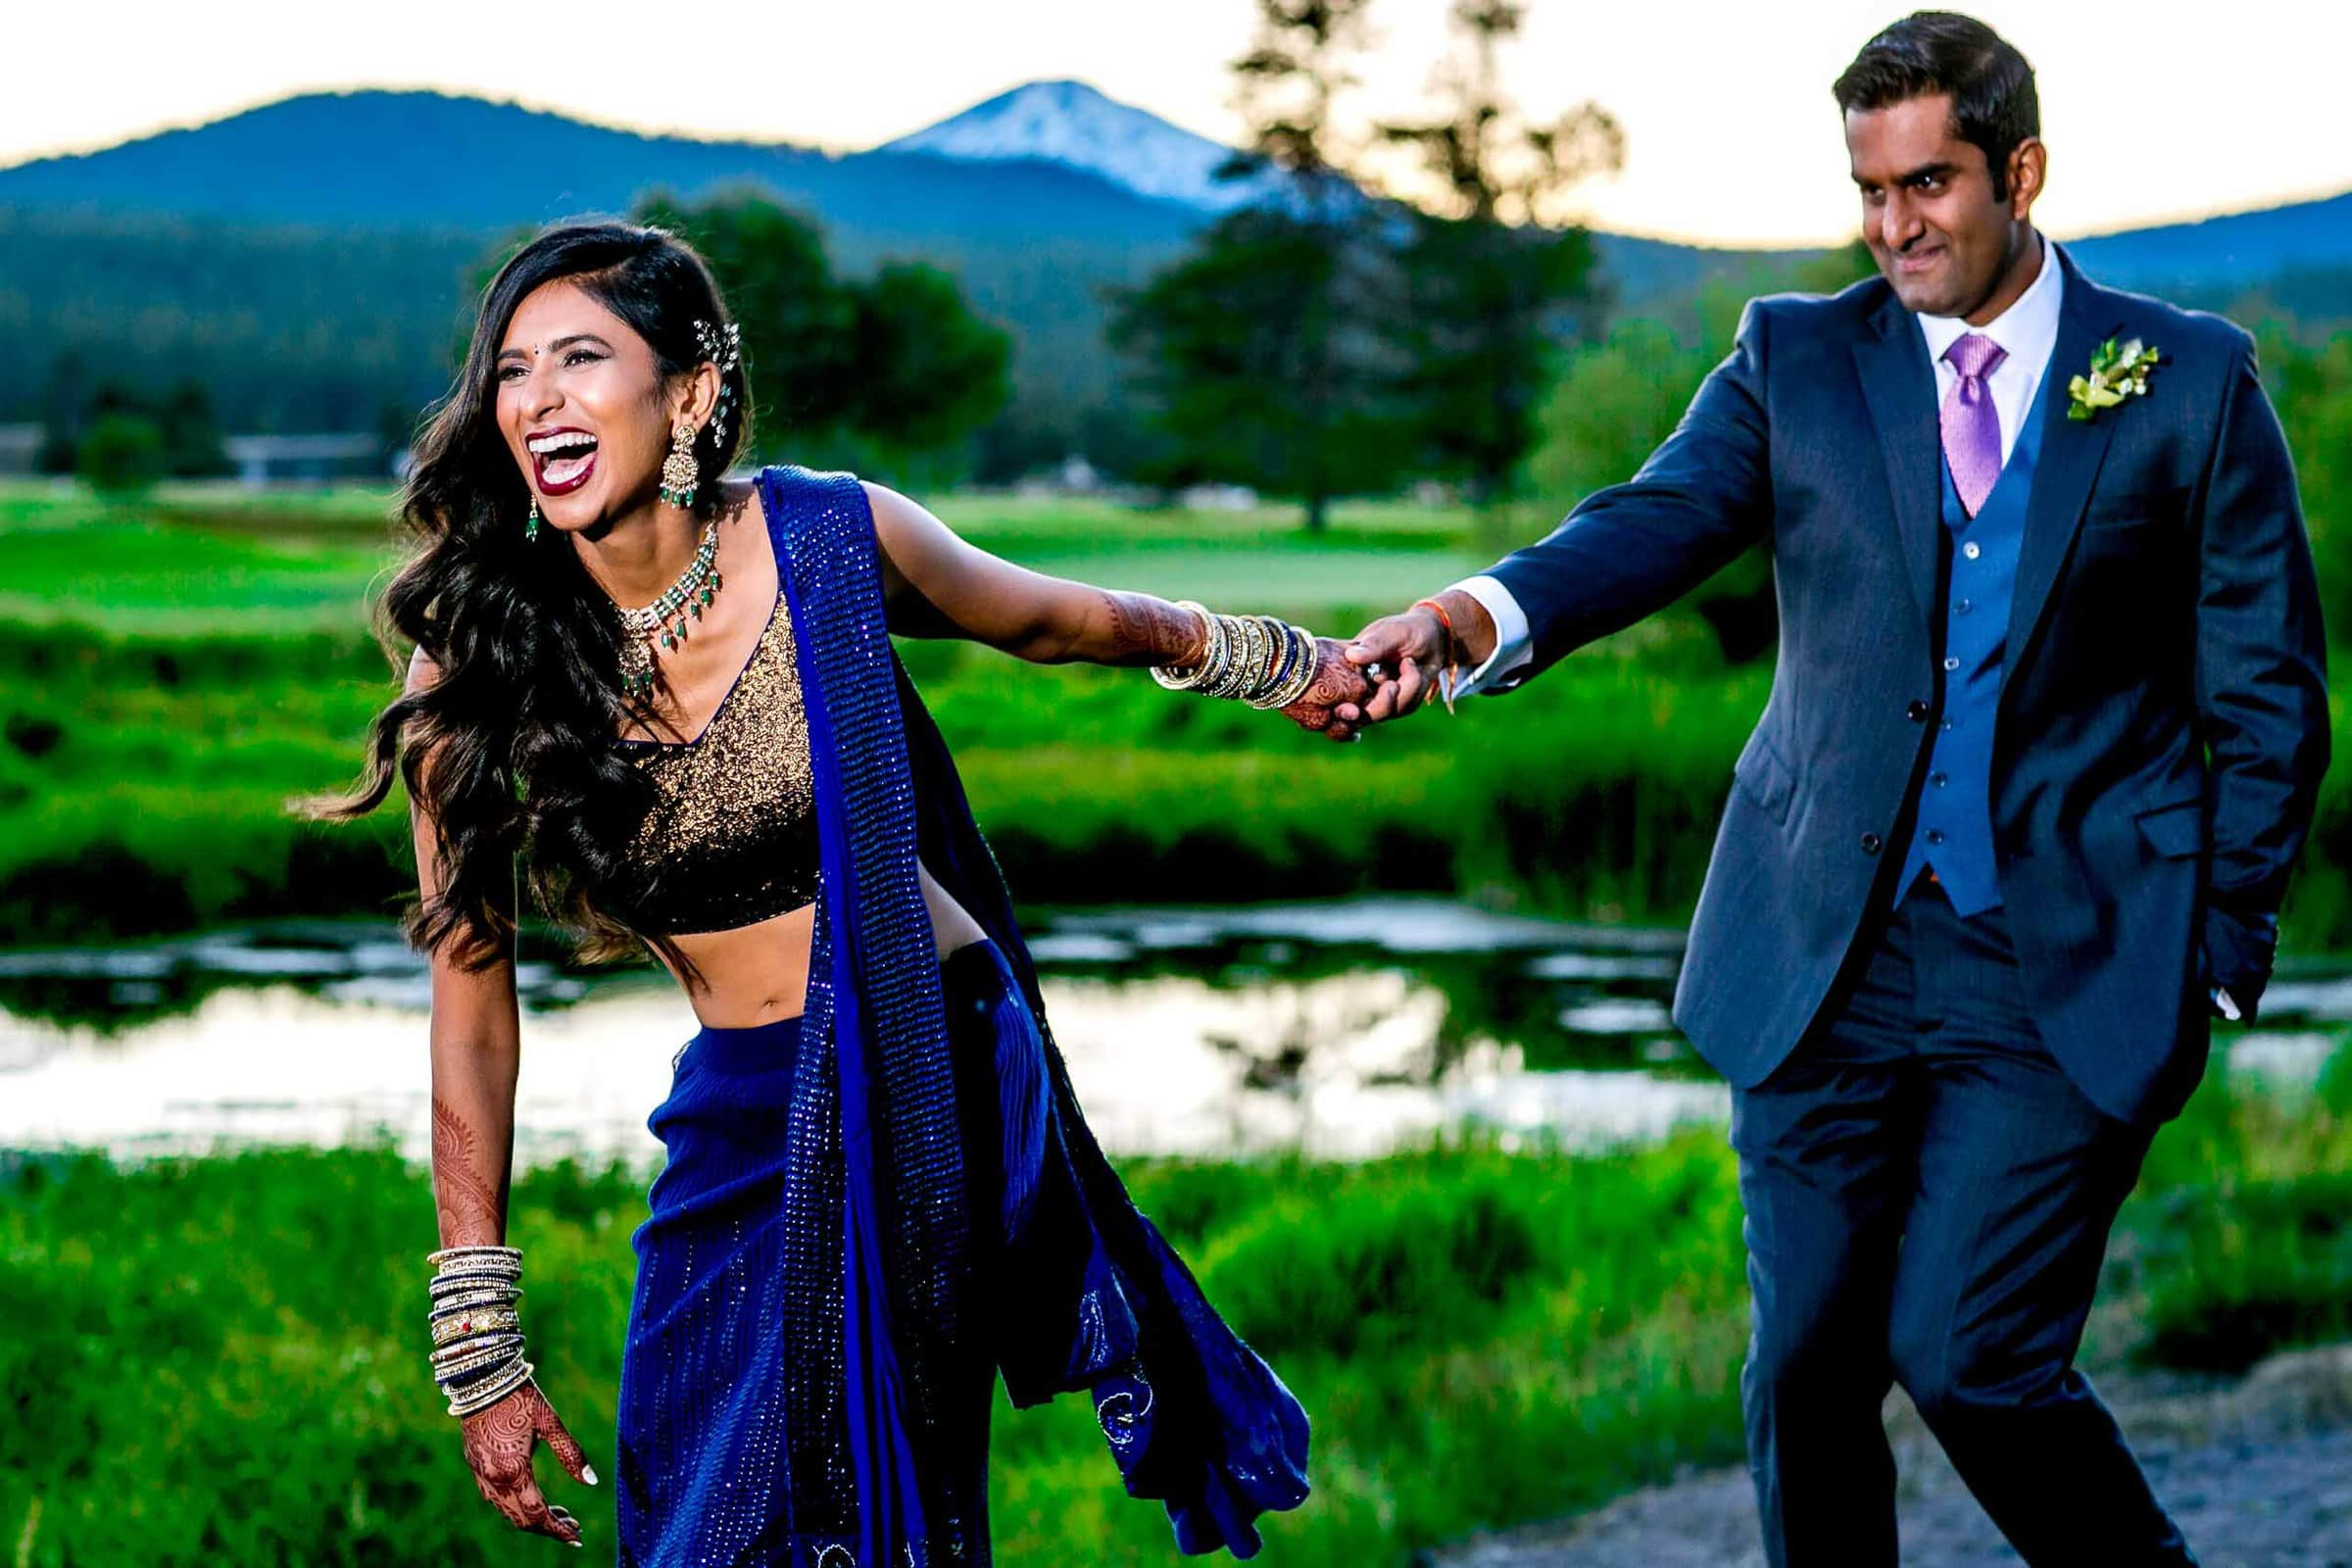 Fun photo of happy bride and groom during an Indian Sunriver Resort wedding in Bend Oregon in Central Oregon.